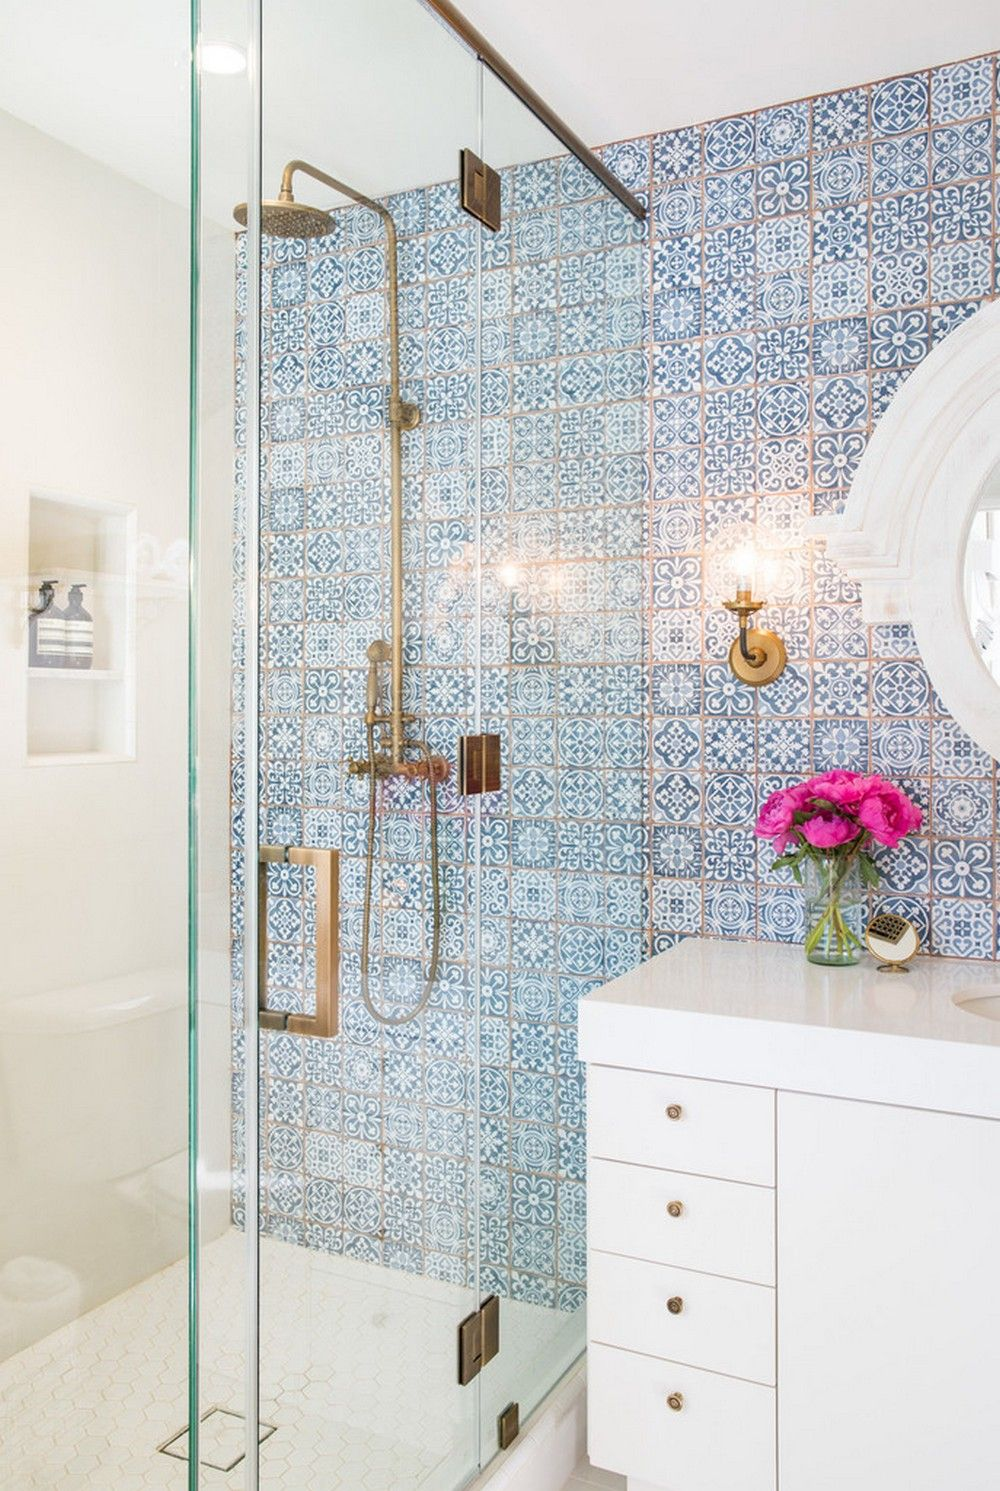 Small bathroom decorating (57 | Small bathroom, Small bathroom ...